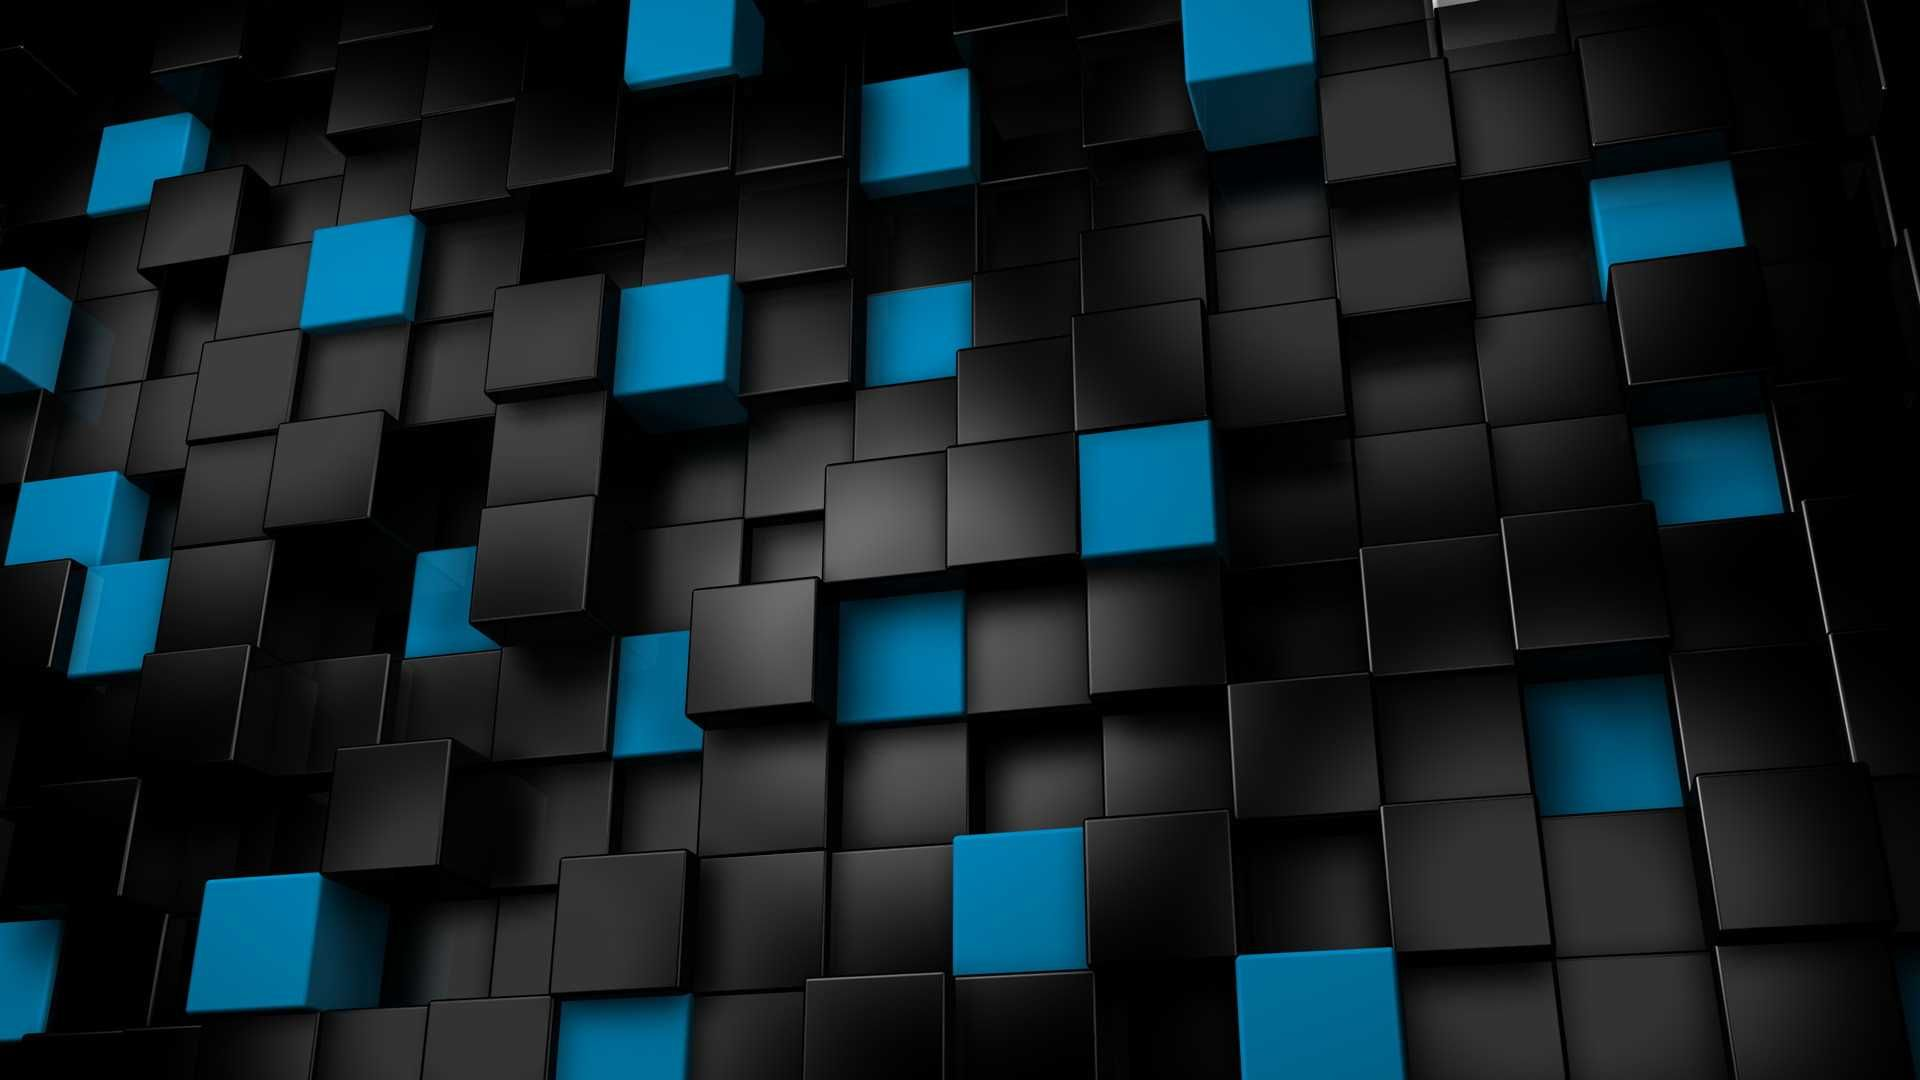 Blue Black Abstract Wallpaper Background Black And Blue